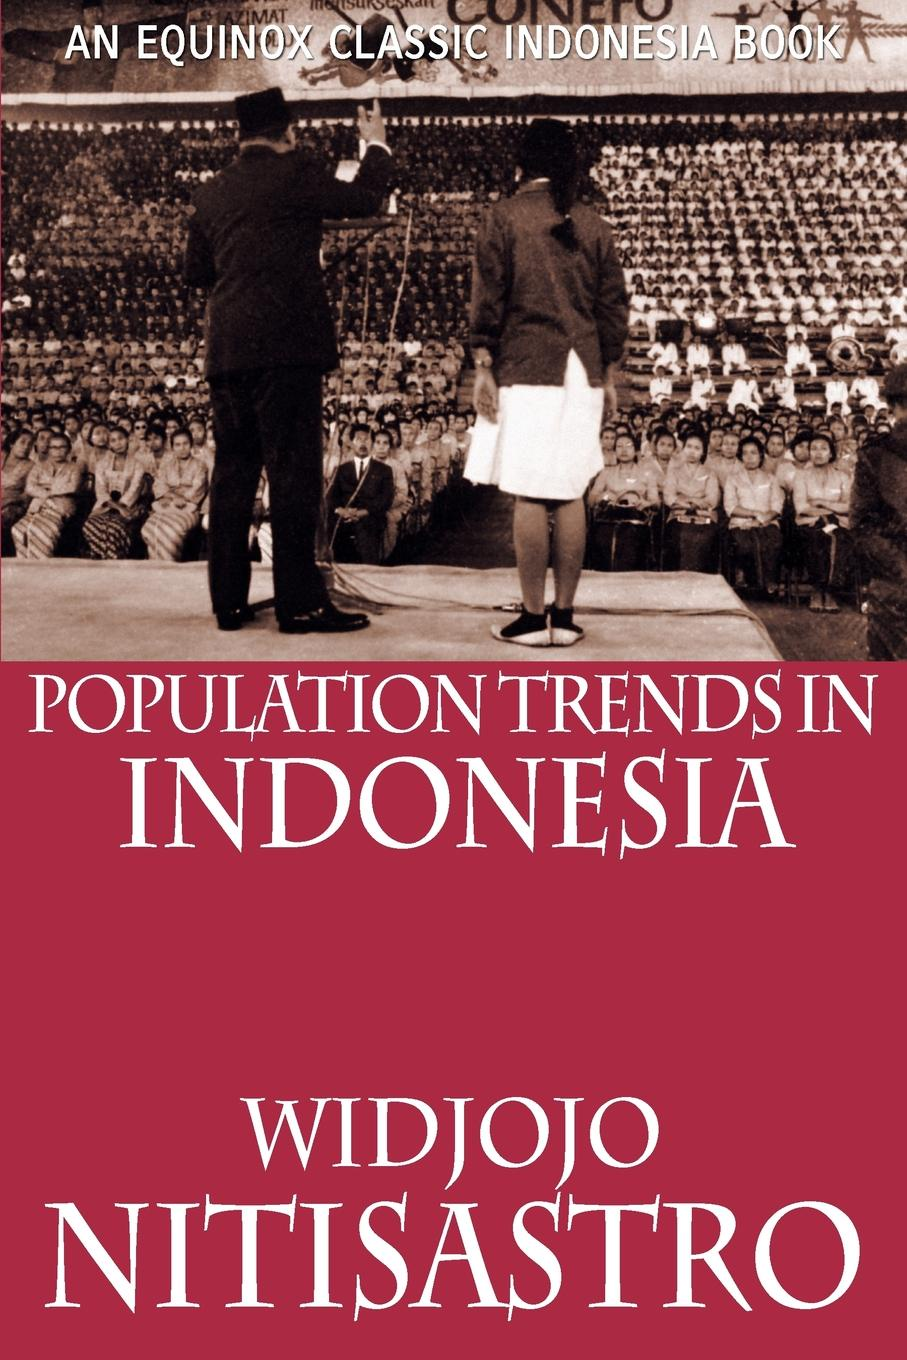 Widjojo Nitisastro Population Trends in Indonesia bolton s norms for hyderabad population